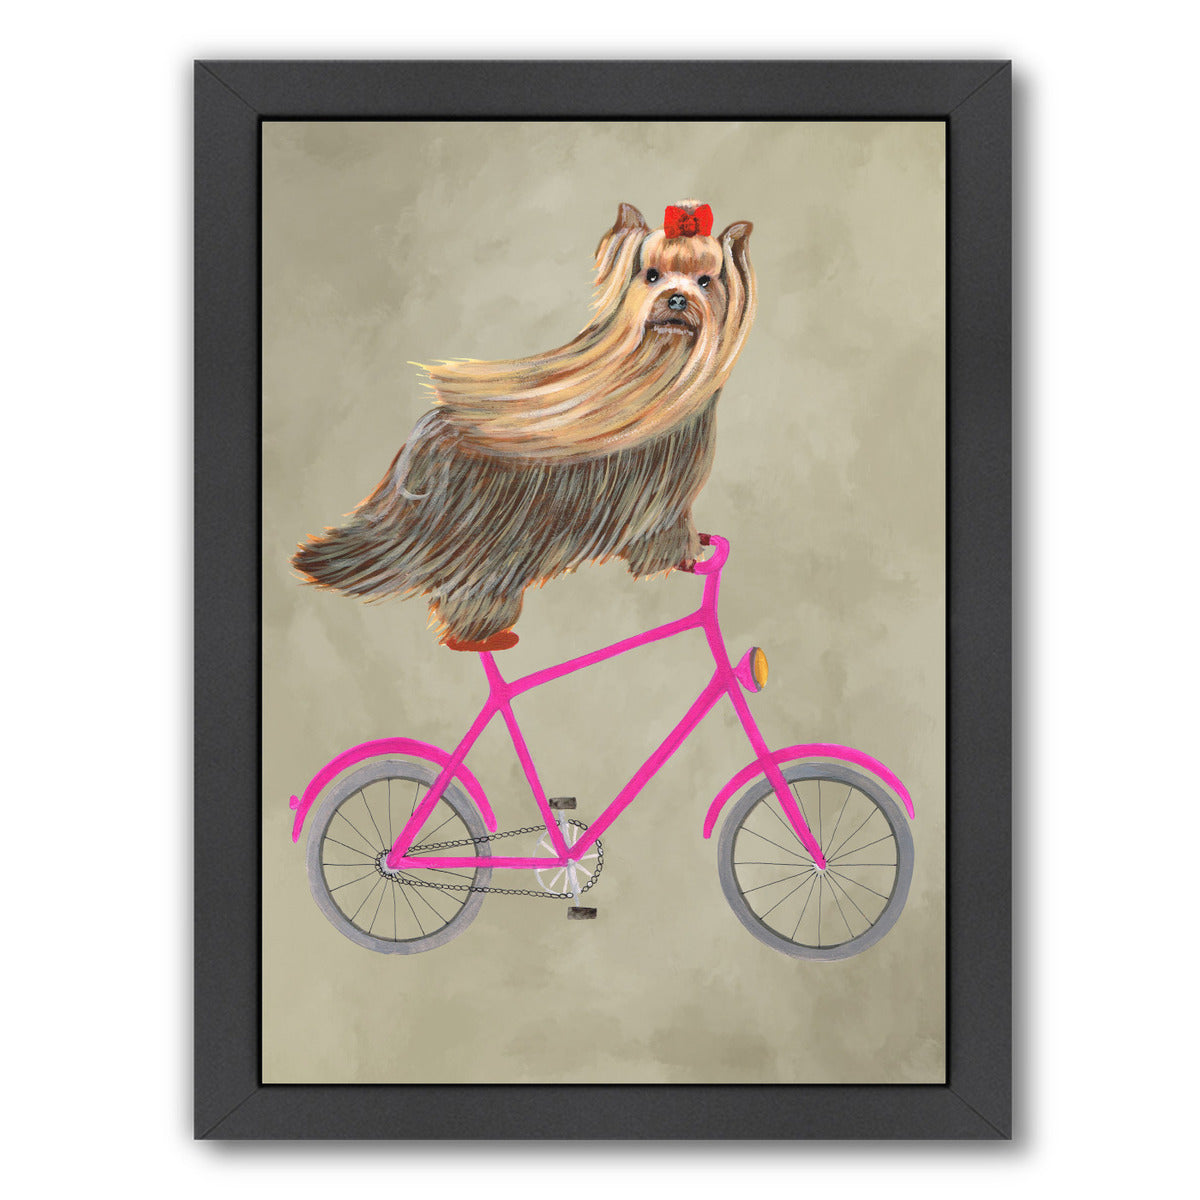 Yorkshire Terrier On Bicycle By Coco De Paris - Black Framed Print - Wall Art - Americanflat